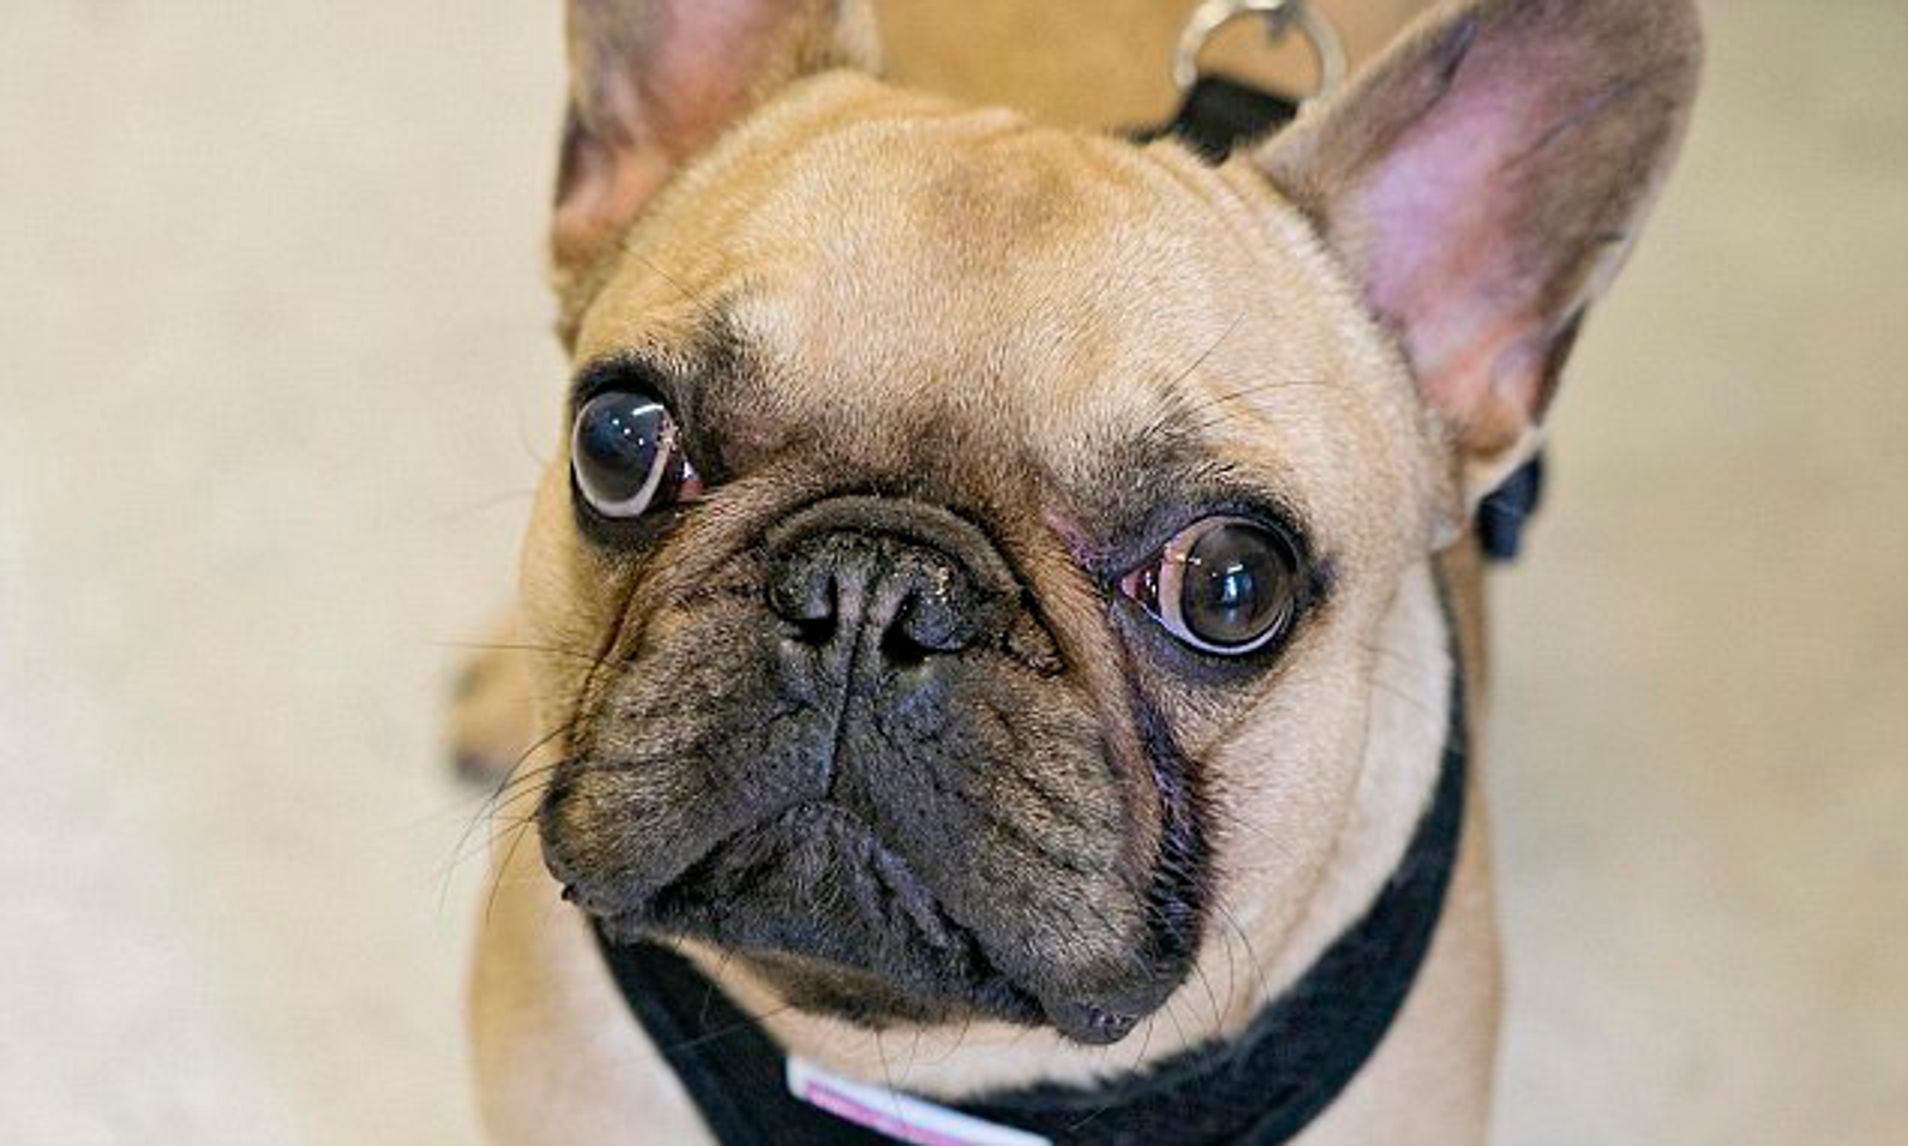 hight resolution of breeding cute pugs and bulldogs is leaving species with crippling health problems